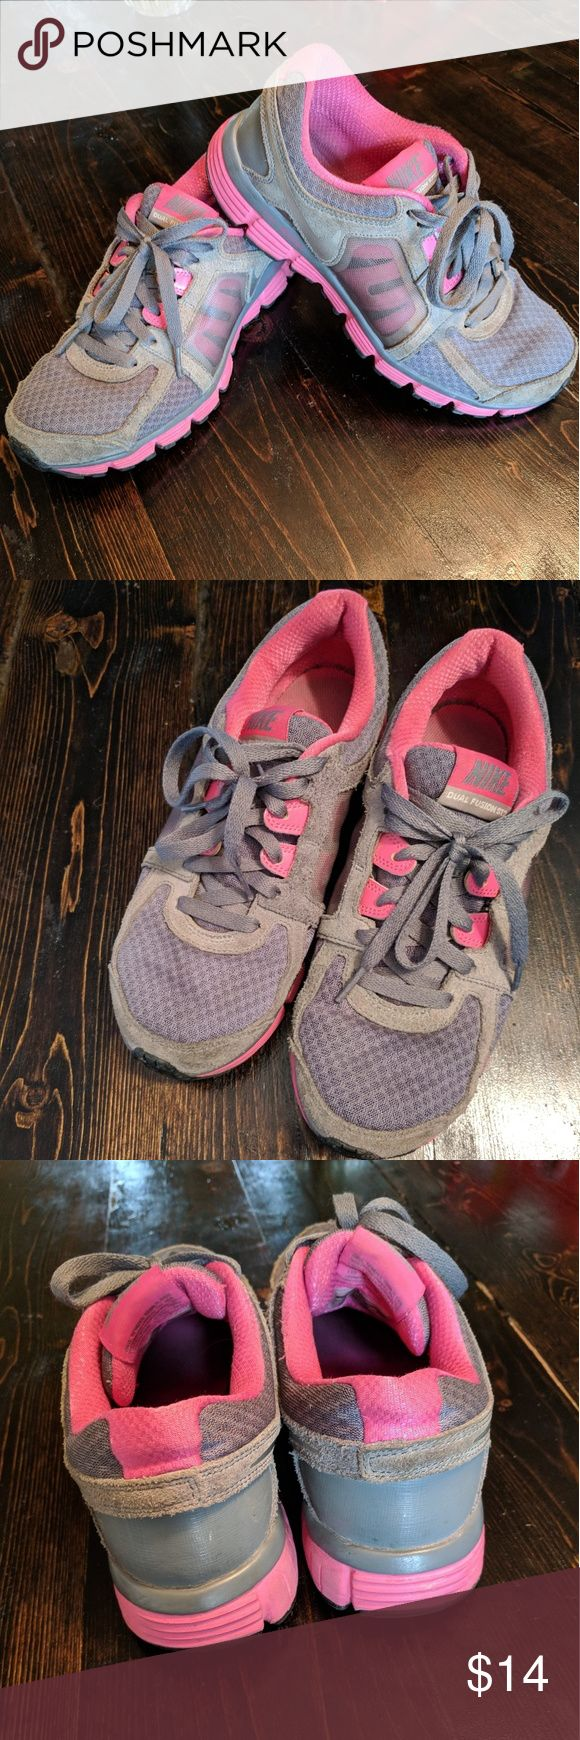 Nike Dual Fusion Shoes sz 8 pink gray Size 8  Pink and gray Worn mostly indoors. Great used condition. Lots of life left!! Nike Shoes Athletic Shoes